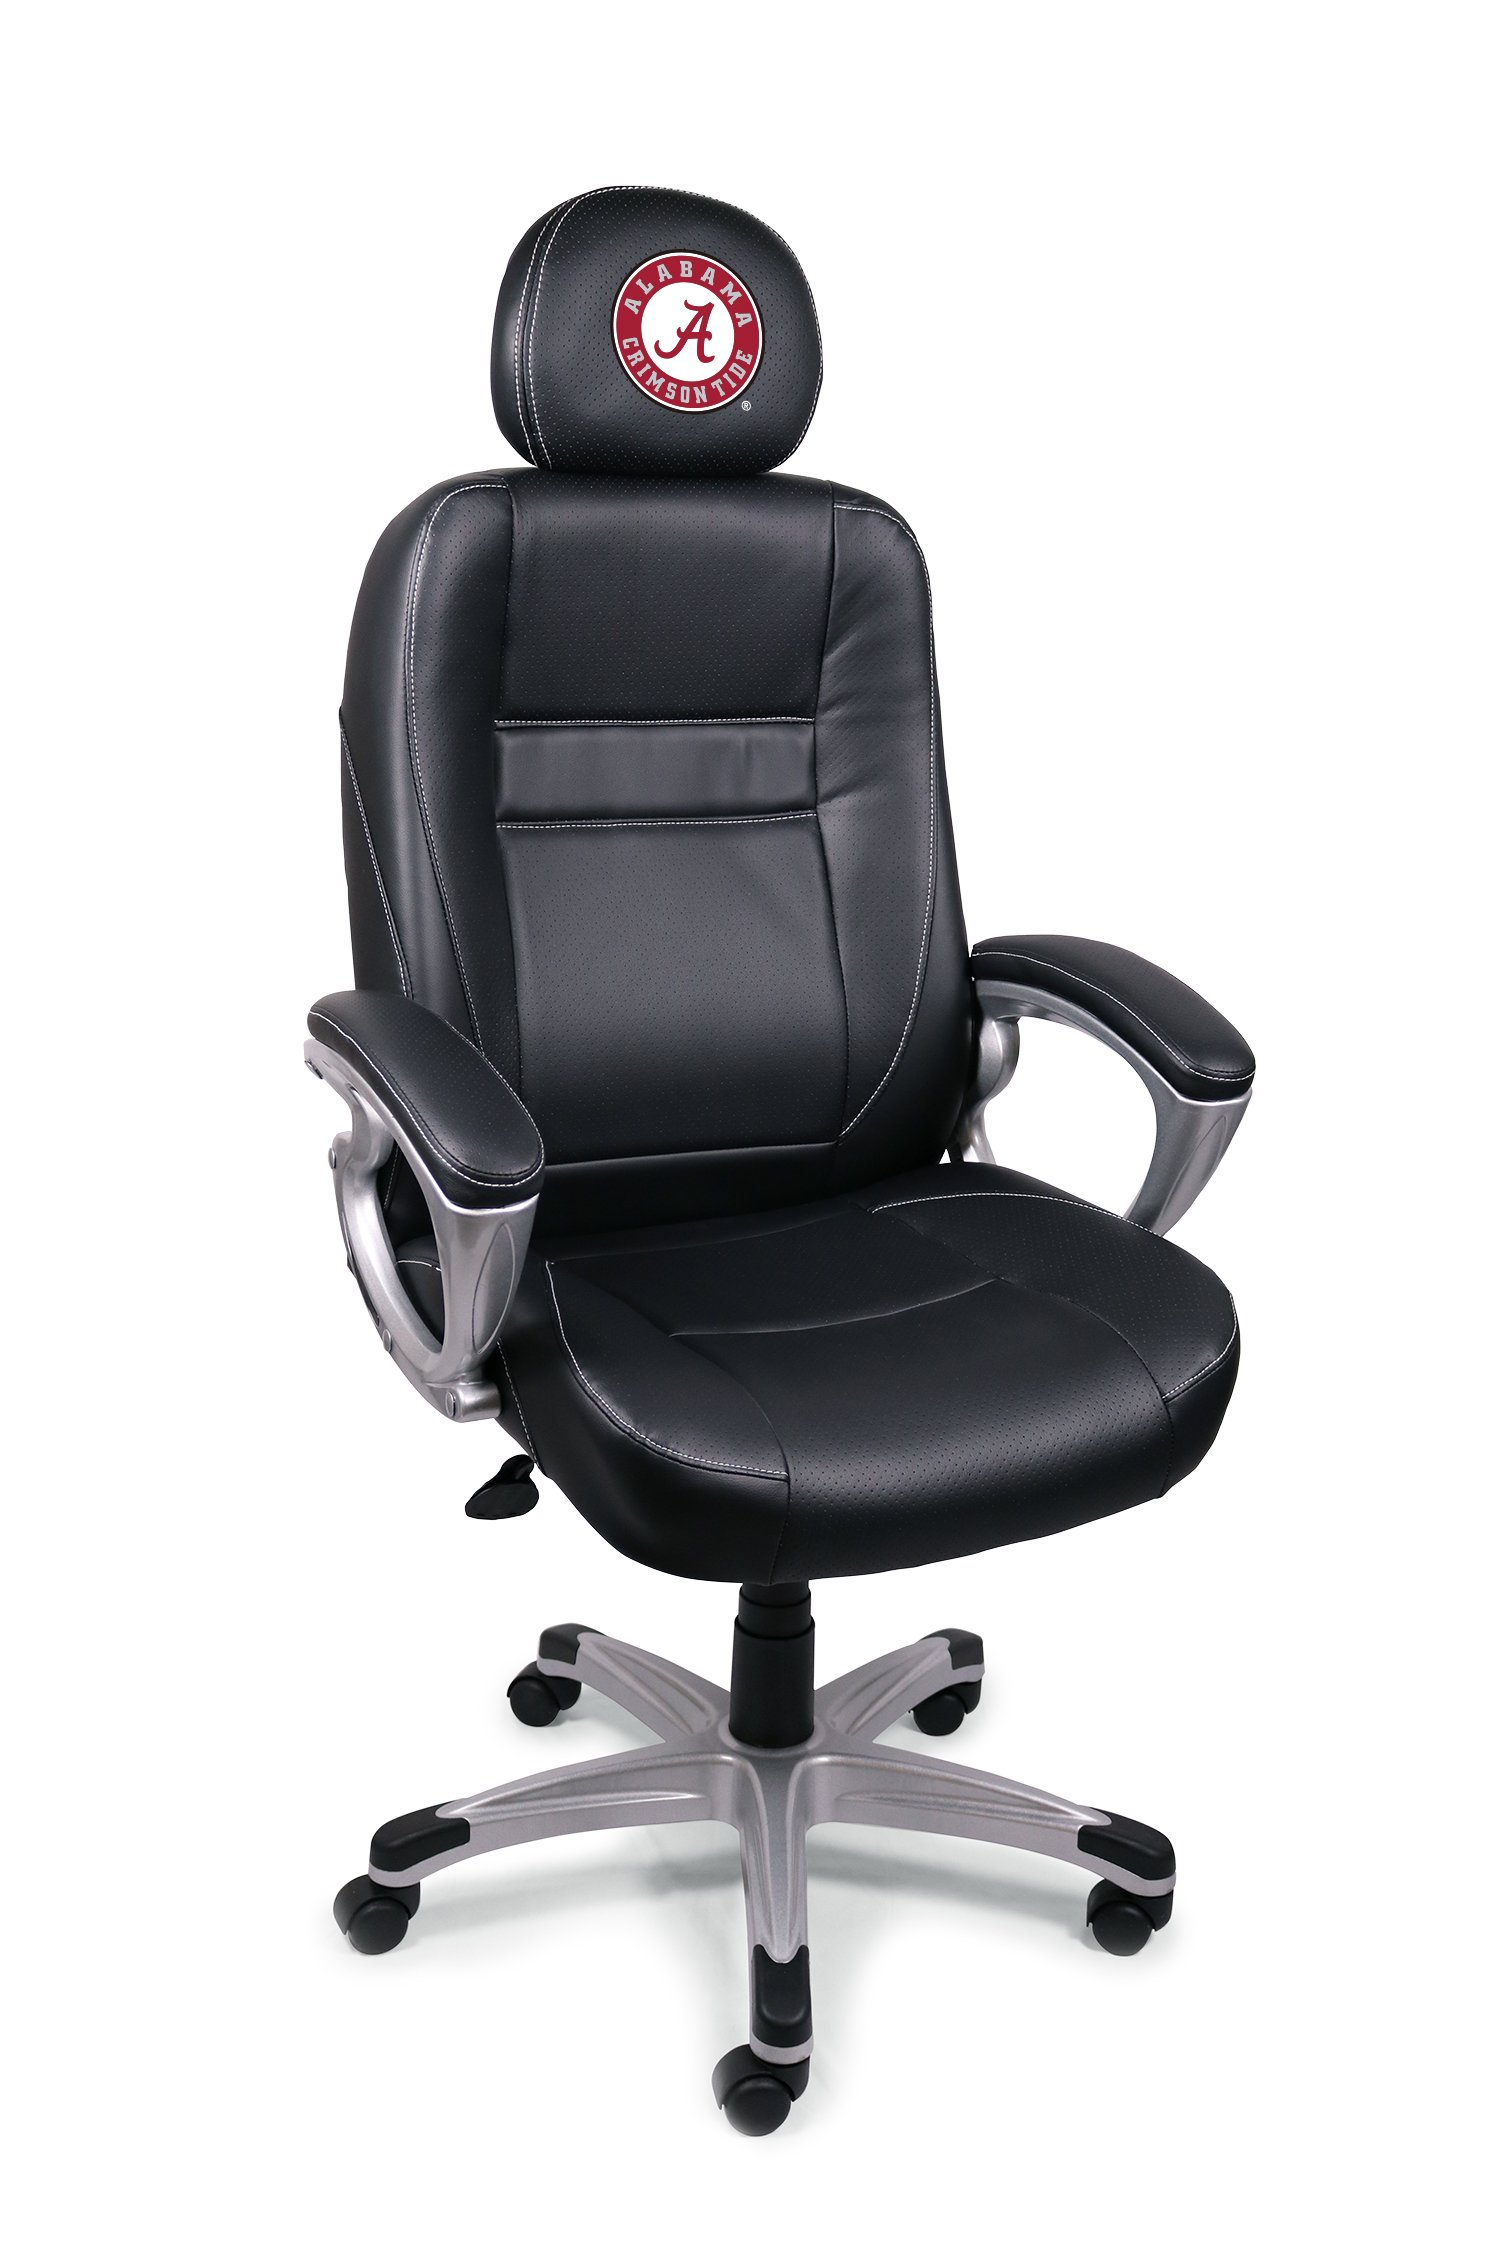 Wild Sports NCAA College Alabama Crimson Tide Leather Office Chair by Wild Sports